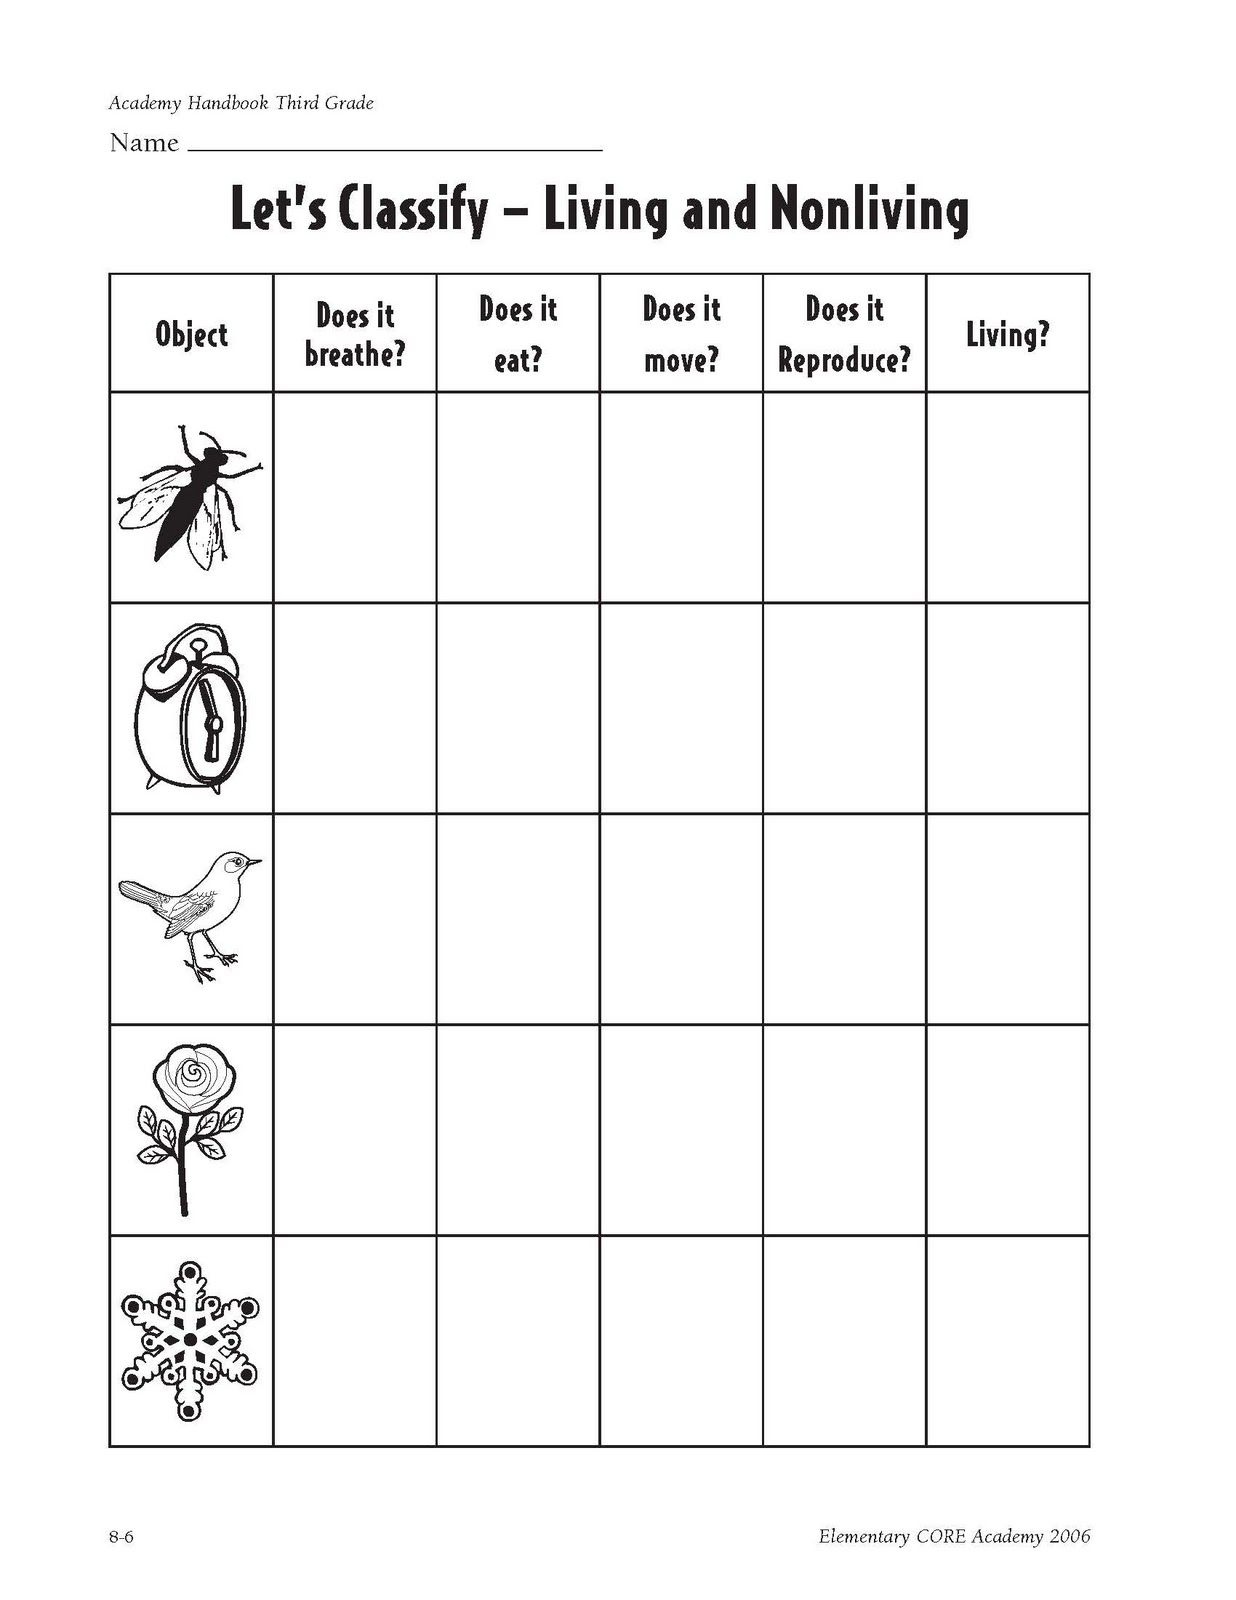 worksheet Living Vs Nonliving Worksheet characteristics of living things made cells obtain and use energy grow develop reproduce respond